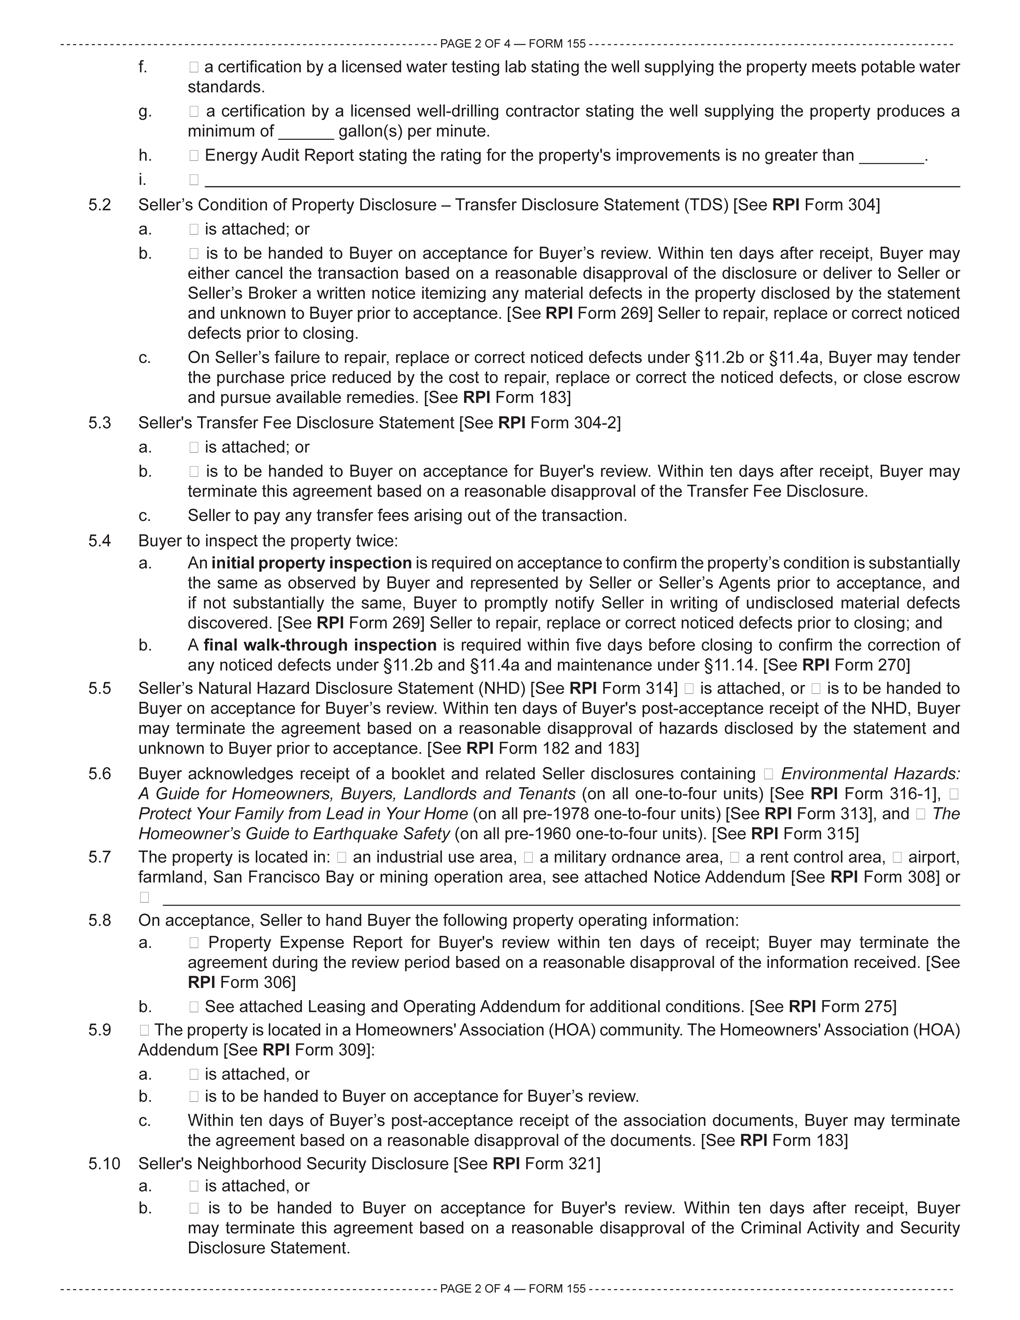 real estate purchase agreement form - Dolap.magnetband.co